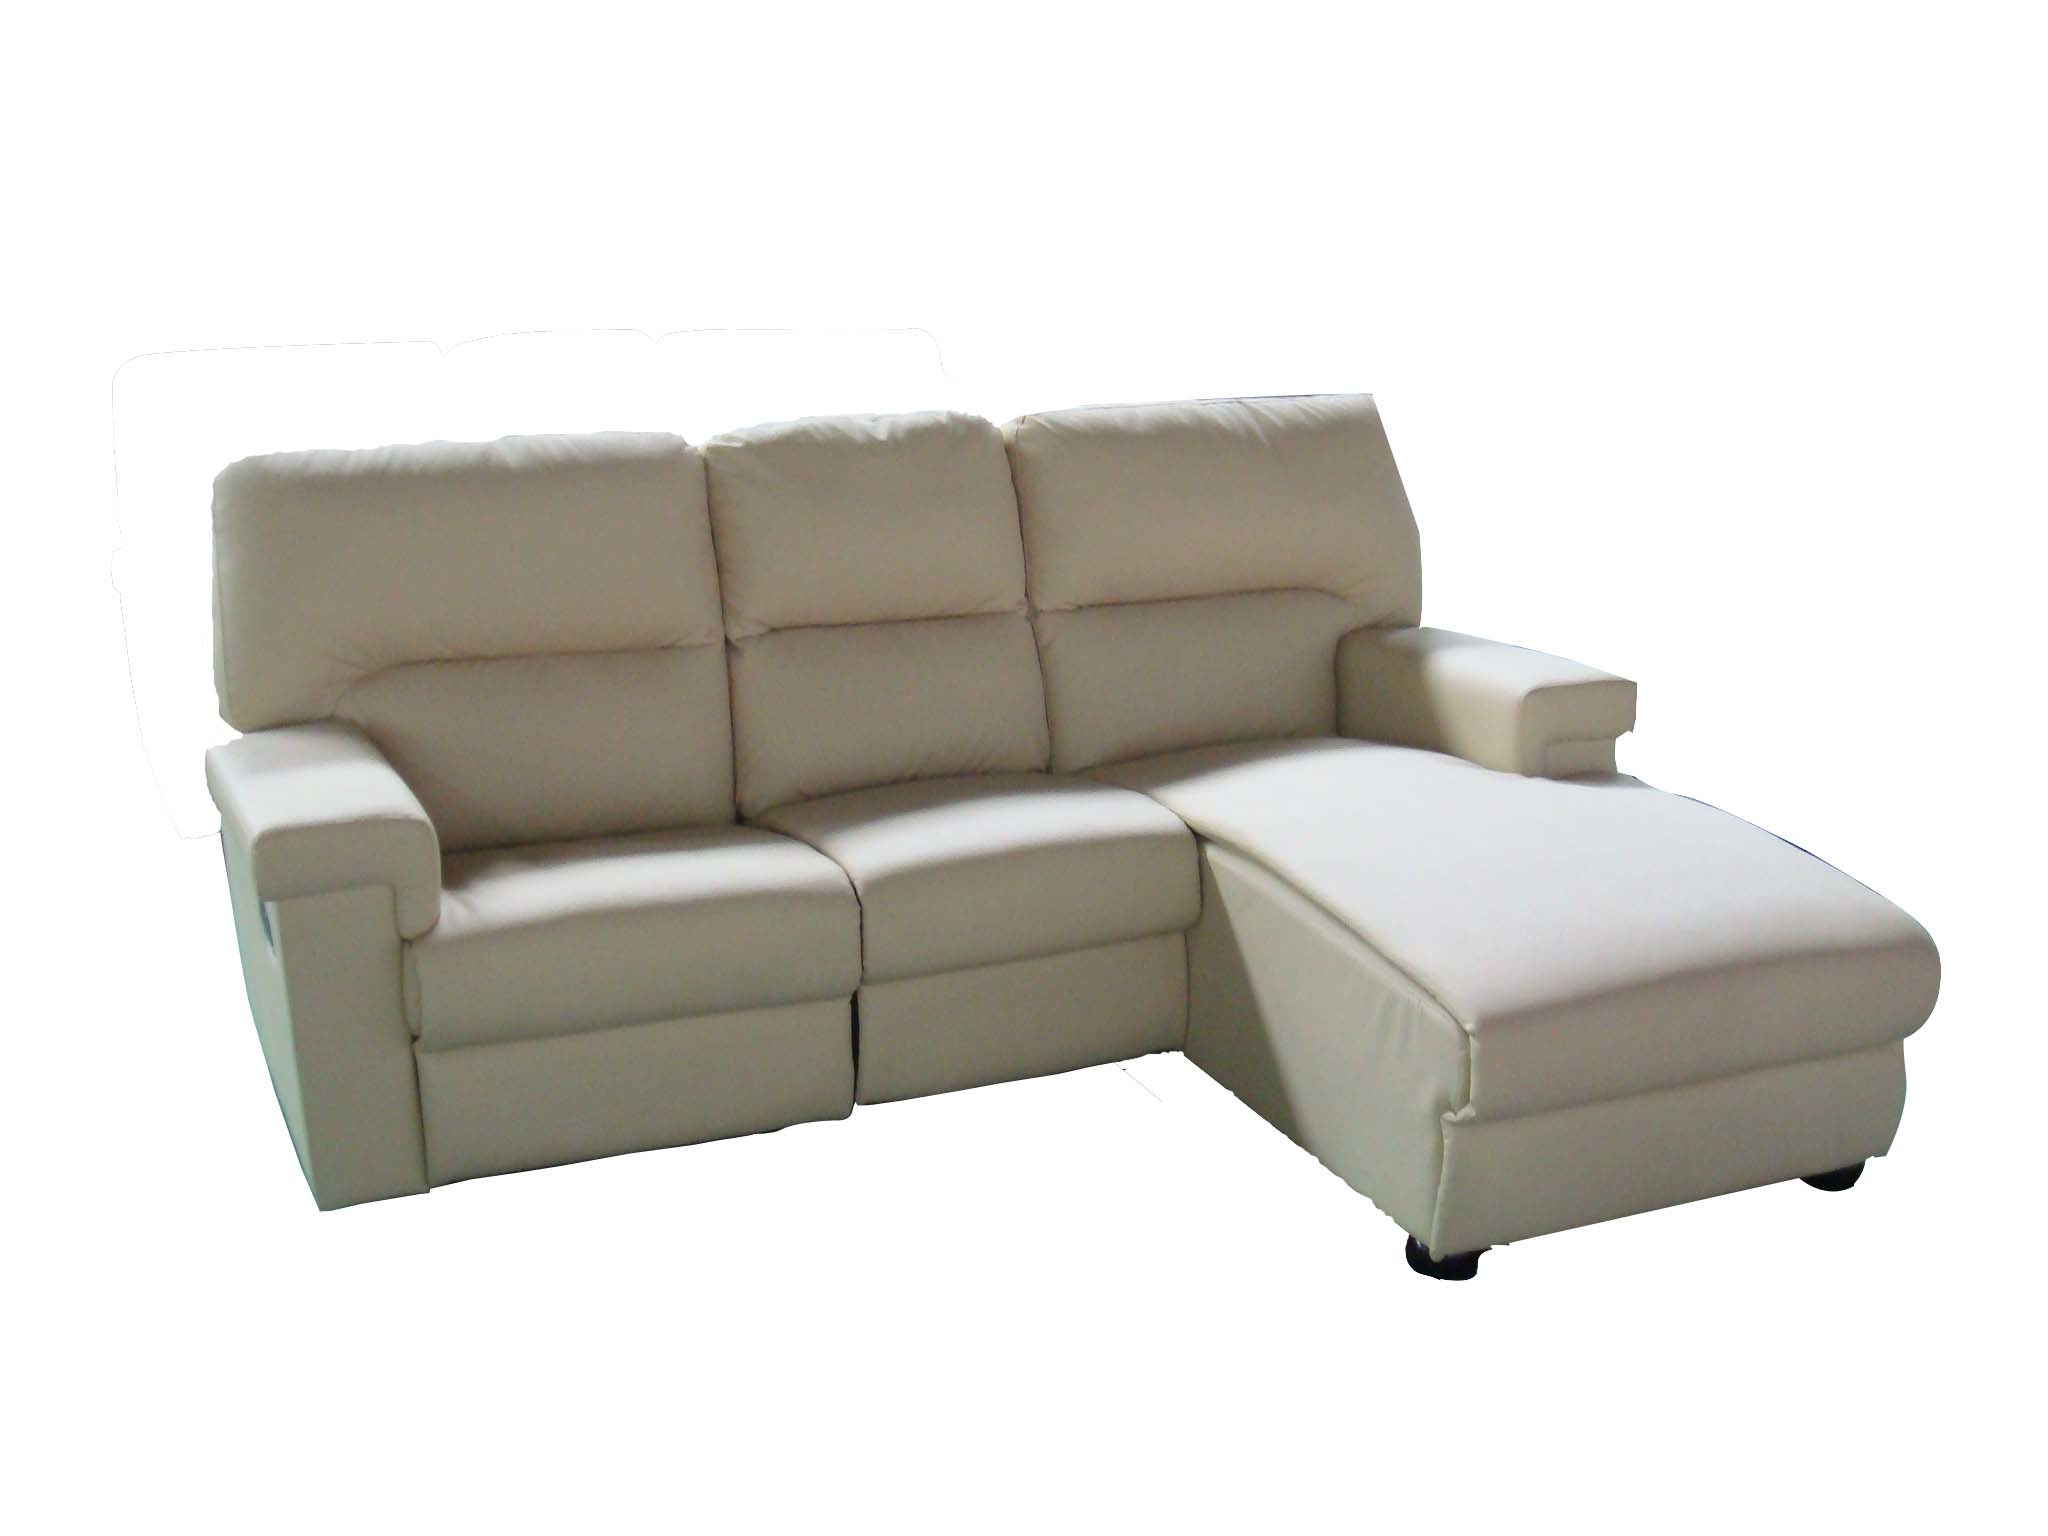 Designer sectional sofa sofa design for Modern leather furniture